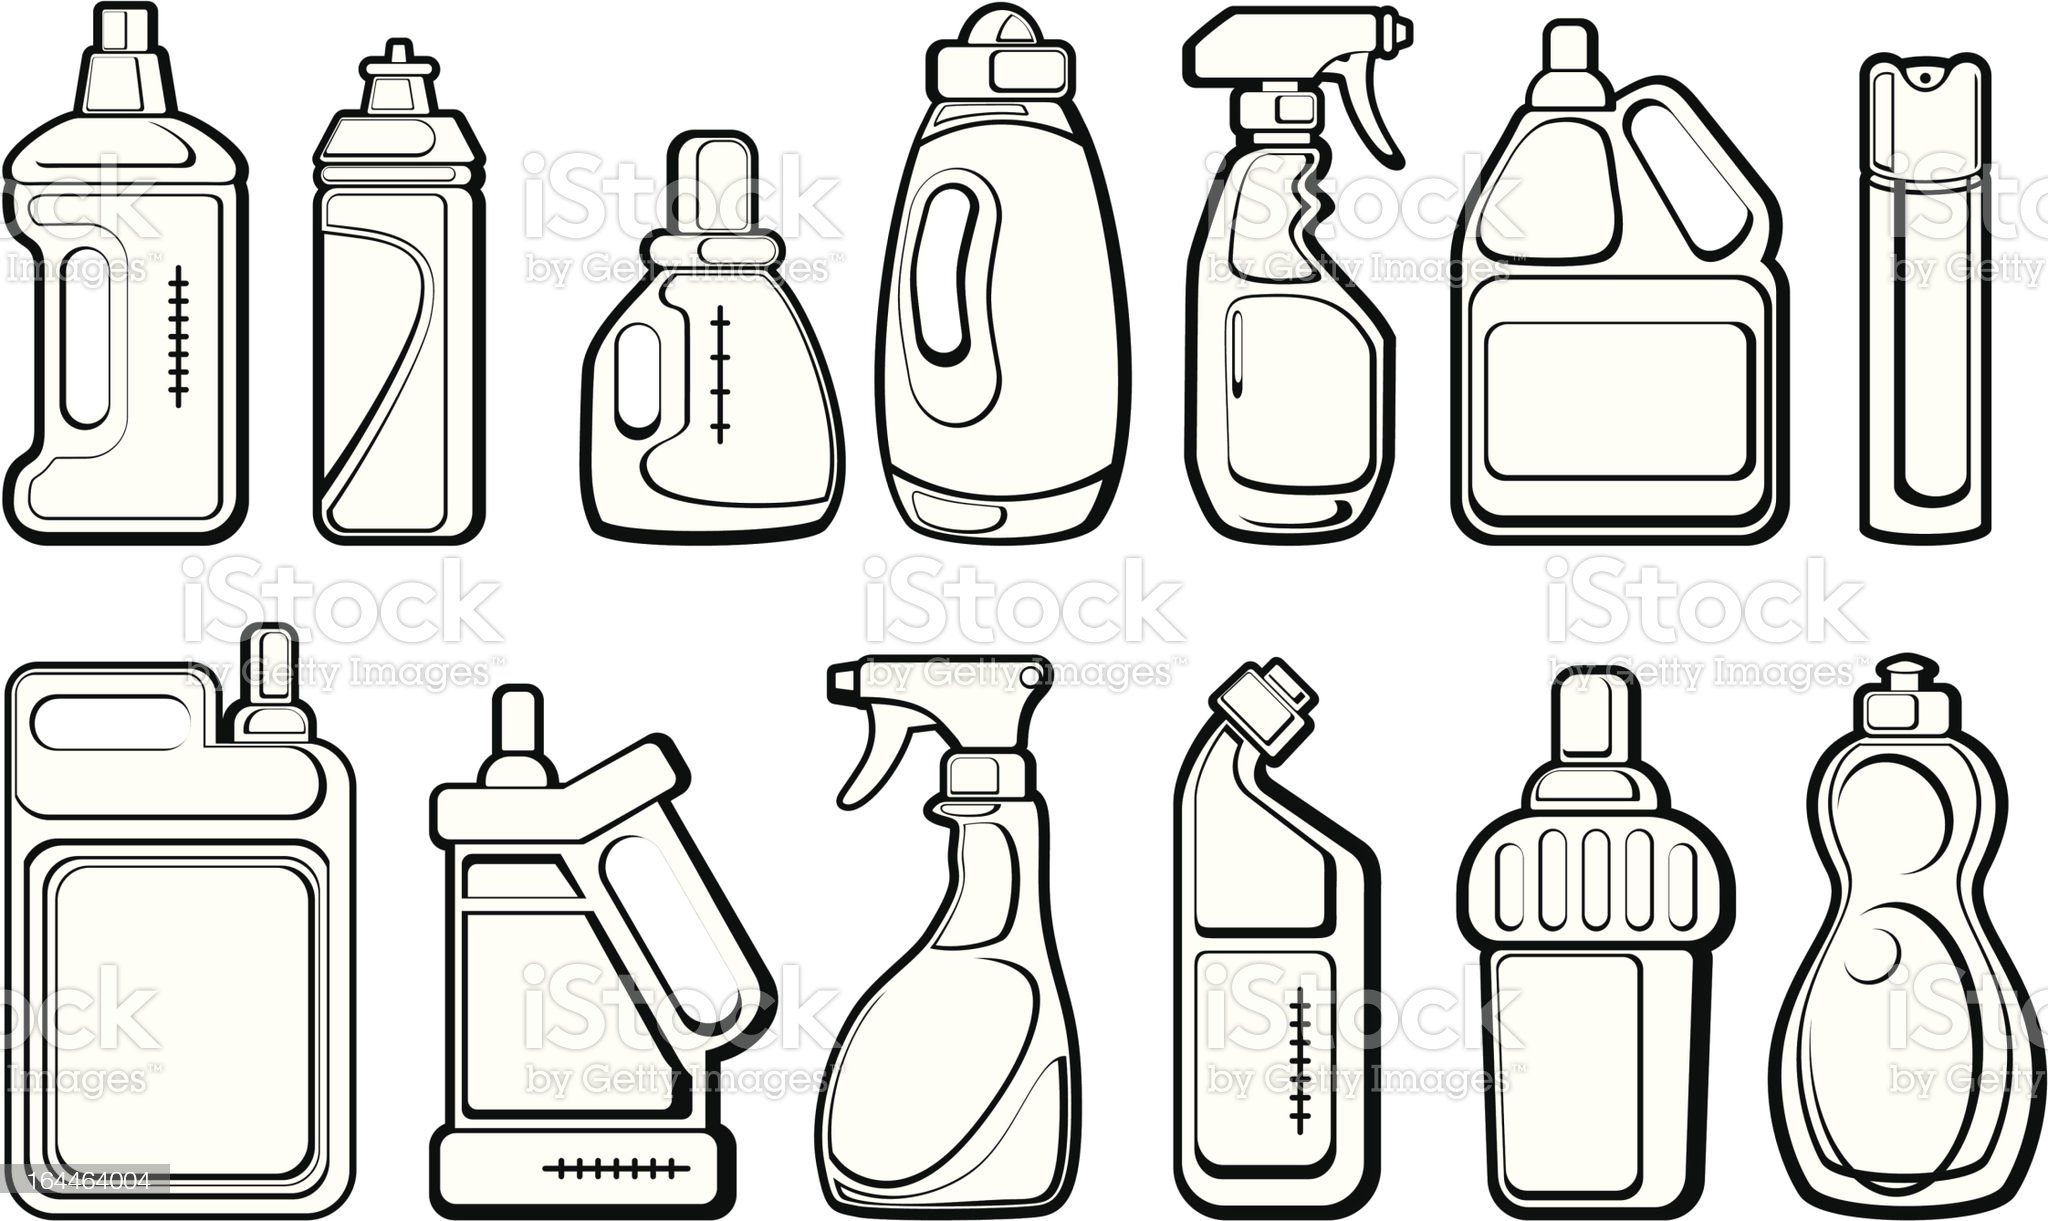 painted bottles royalty-free stock vector art